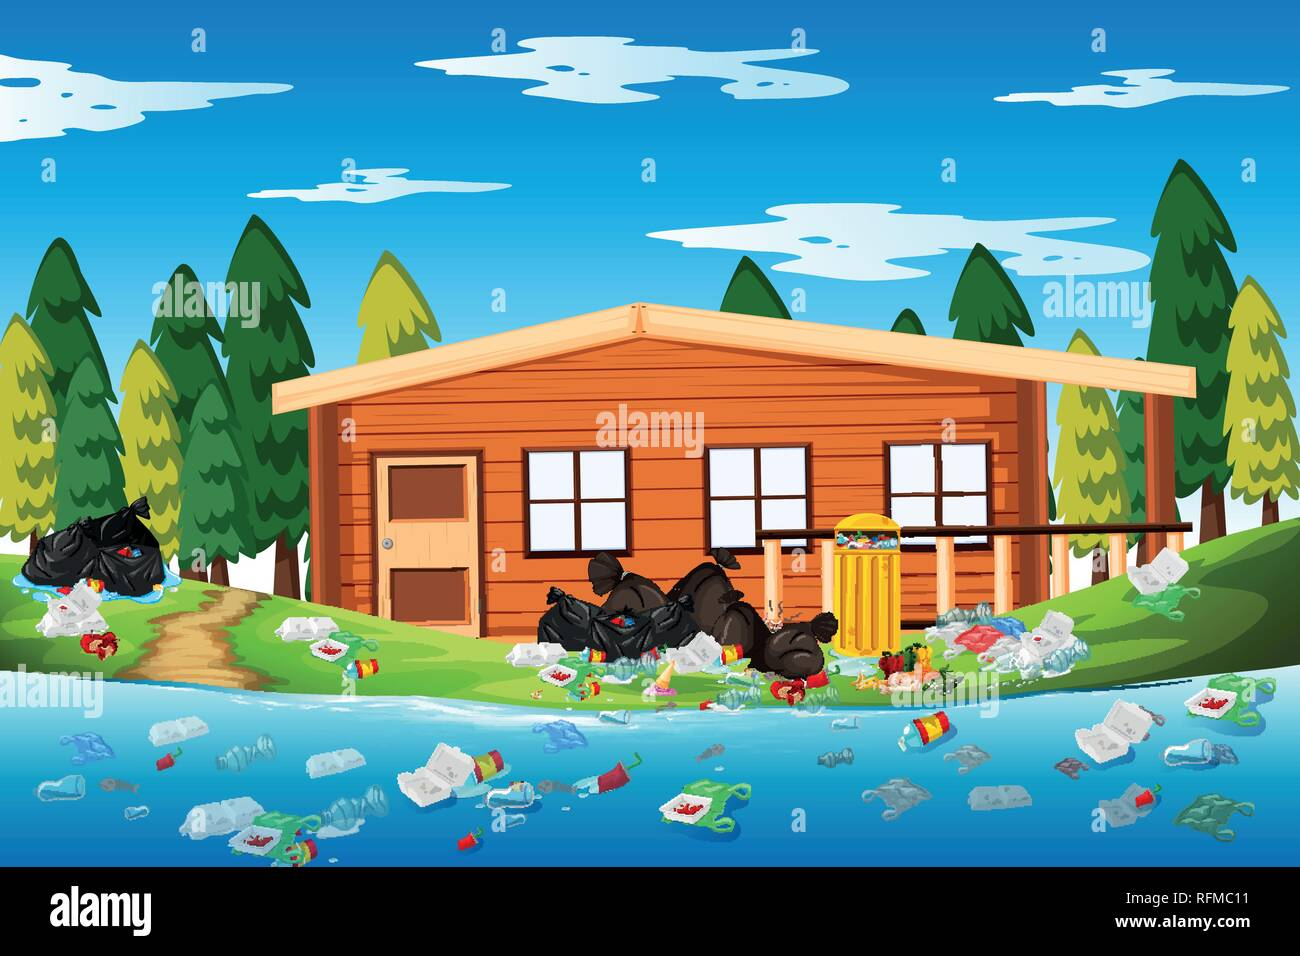 Litter in the log house illustration Stock Vector